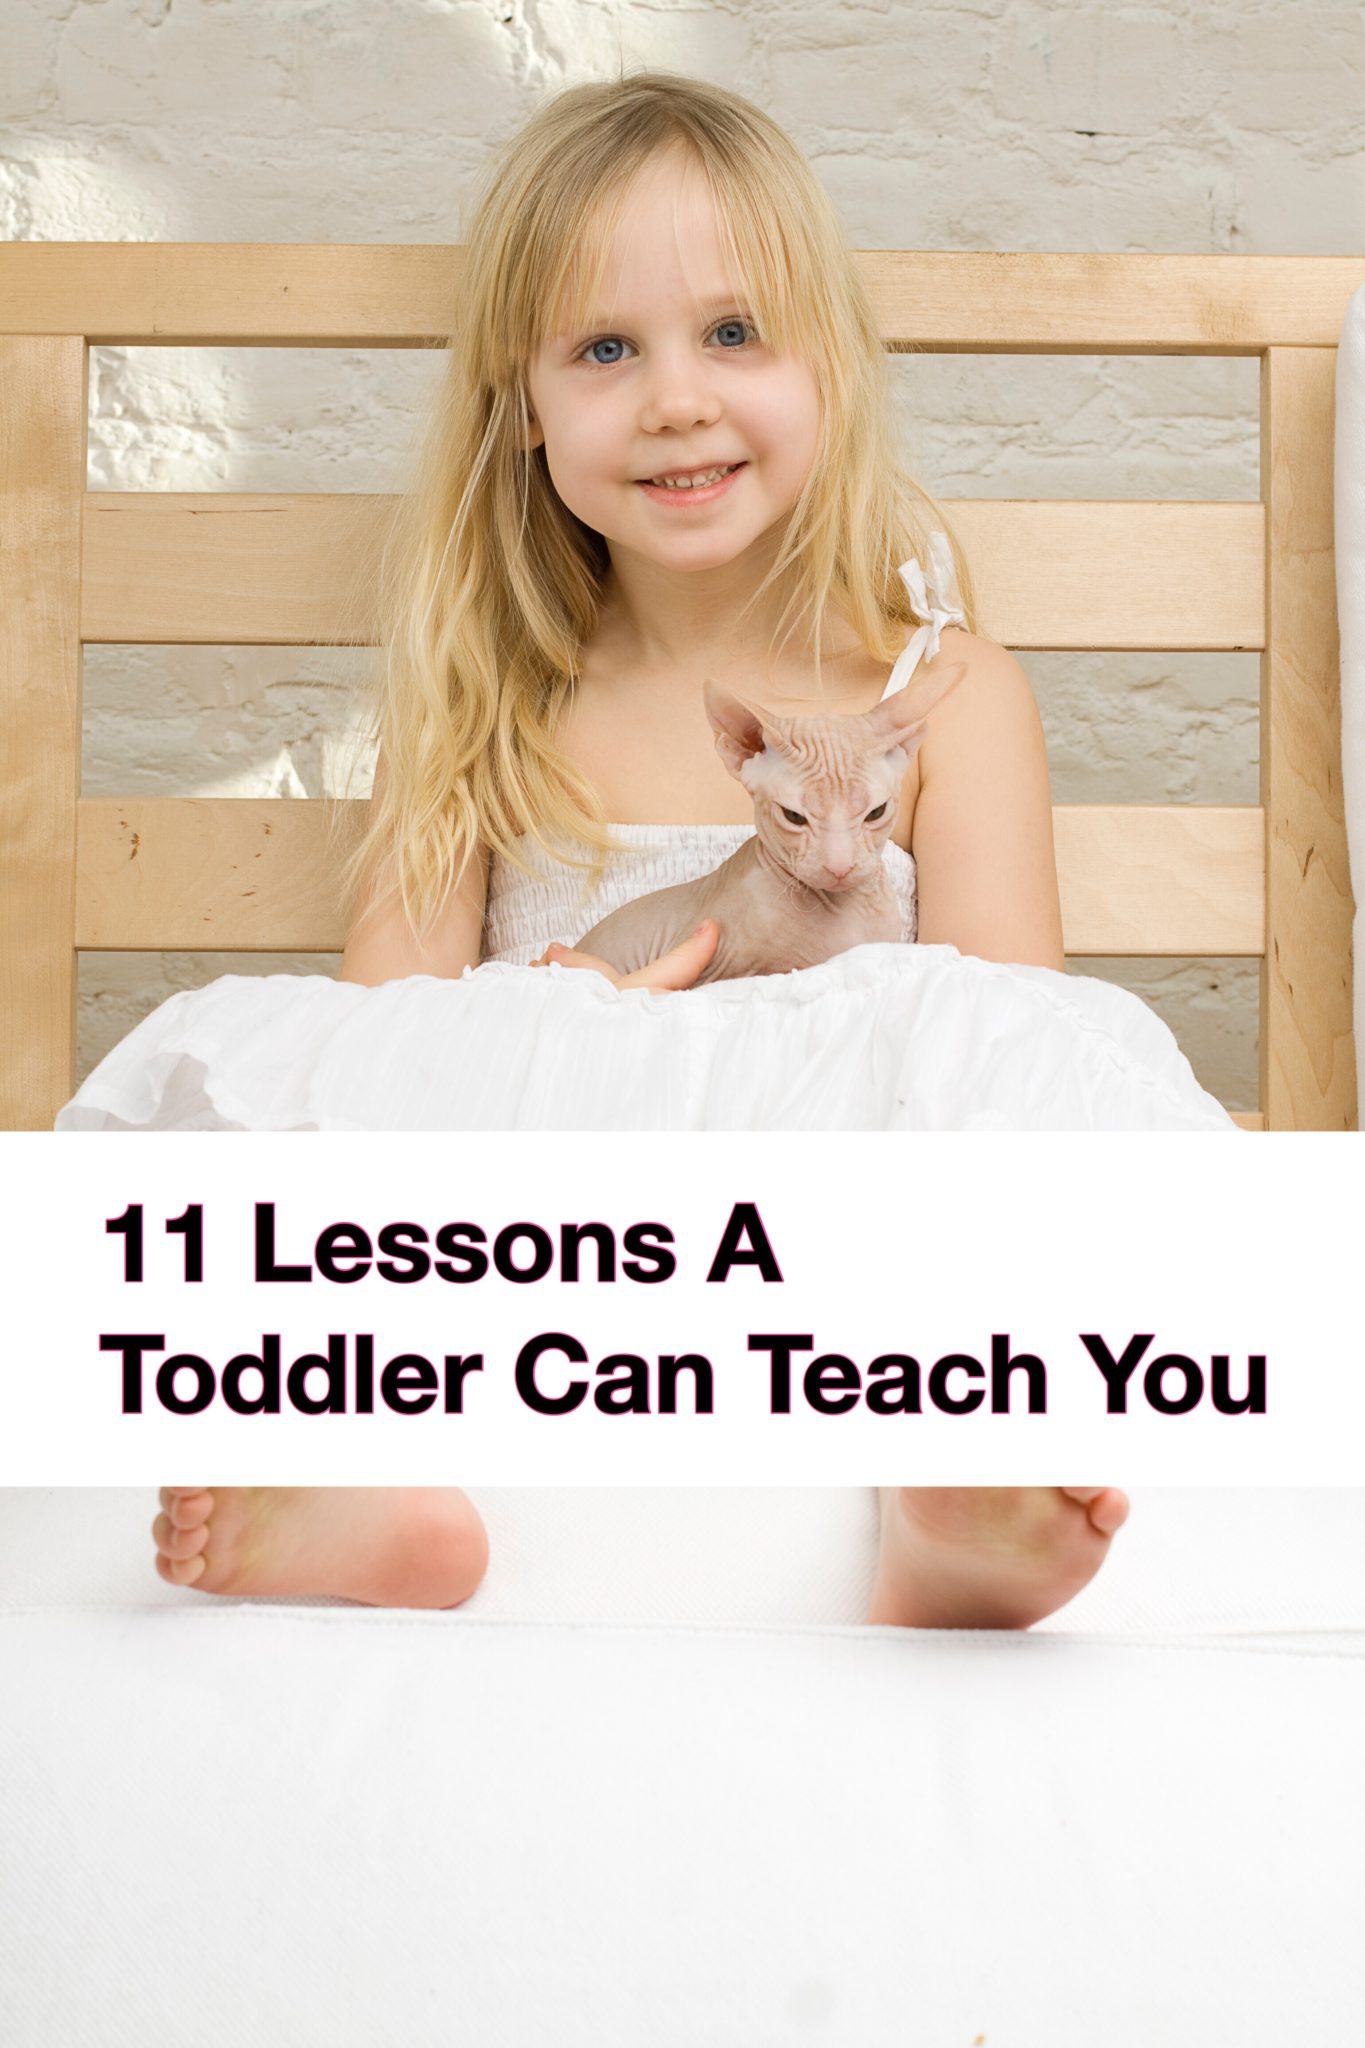 11 Lessons a Toddler Can Teach You. Girl with cat, pin.